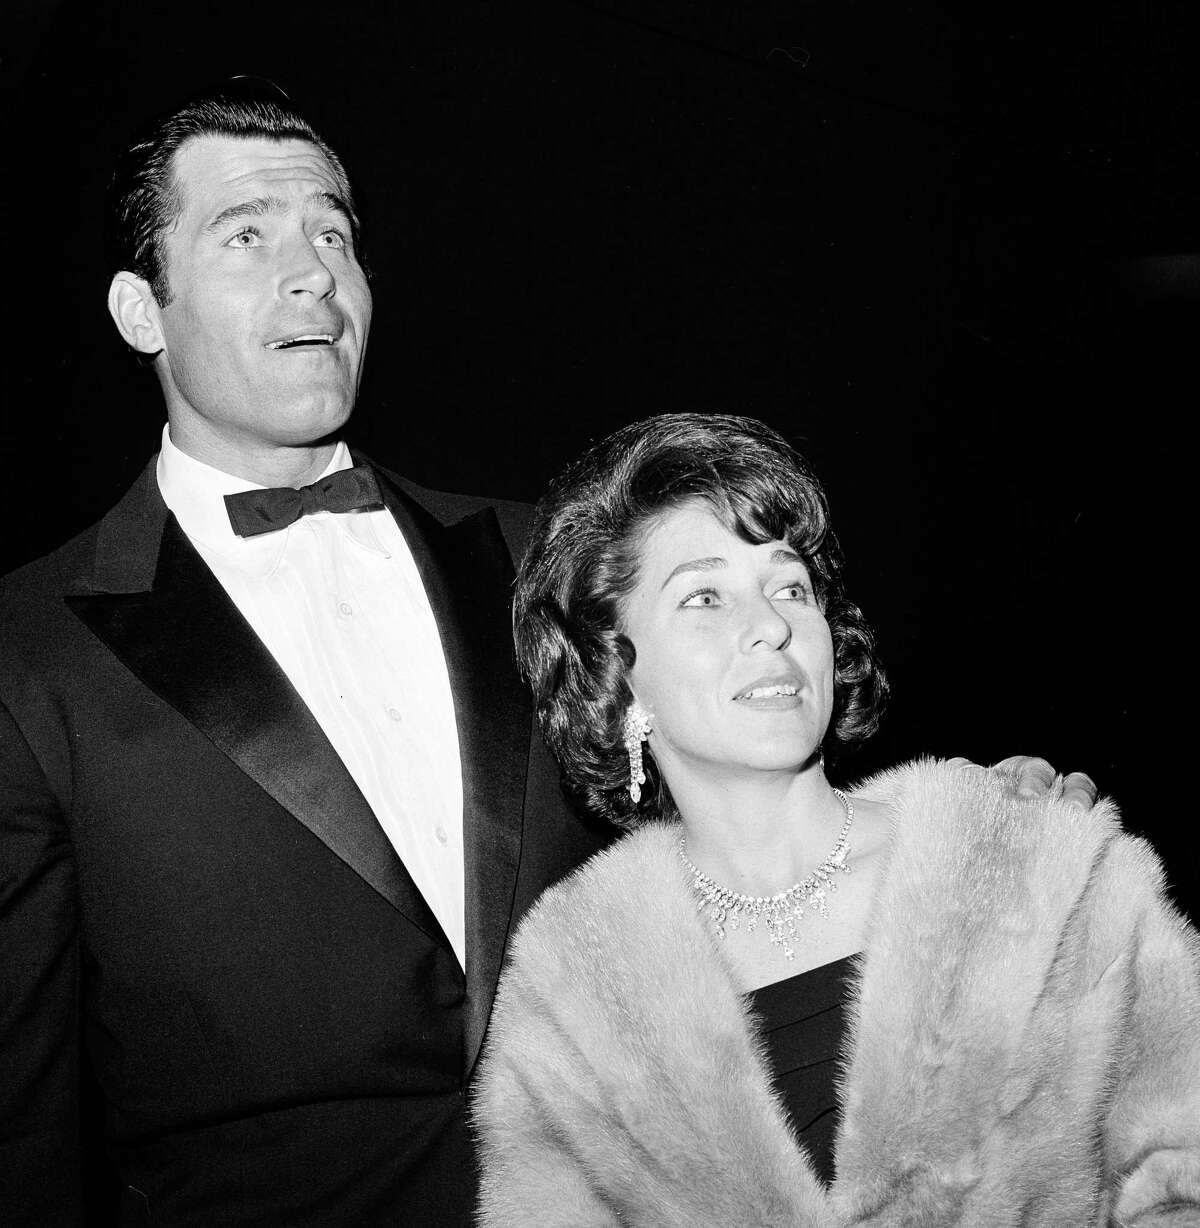 """FILE - In this June 20, 1963 file photo, actor Clint Walker and his wife arrive for the premiere of """"Cleopatra"""" in Los Angeles. Walker, who played the title character in the early TV western """"Cheyenne,"""" died Monday, May 21, 2018, of congestive heart failure at a hospital in Grass Valley, Calif. He was 91."""